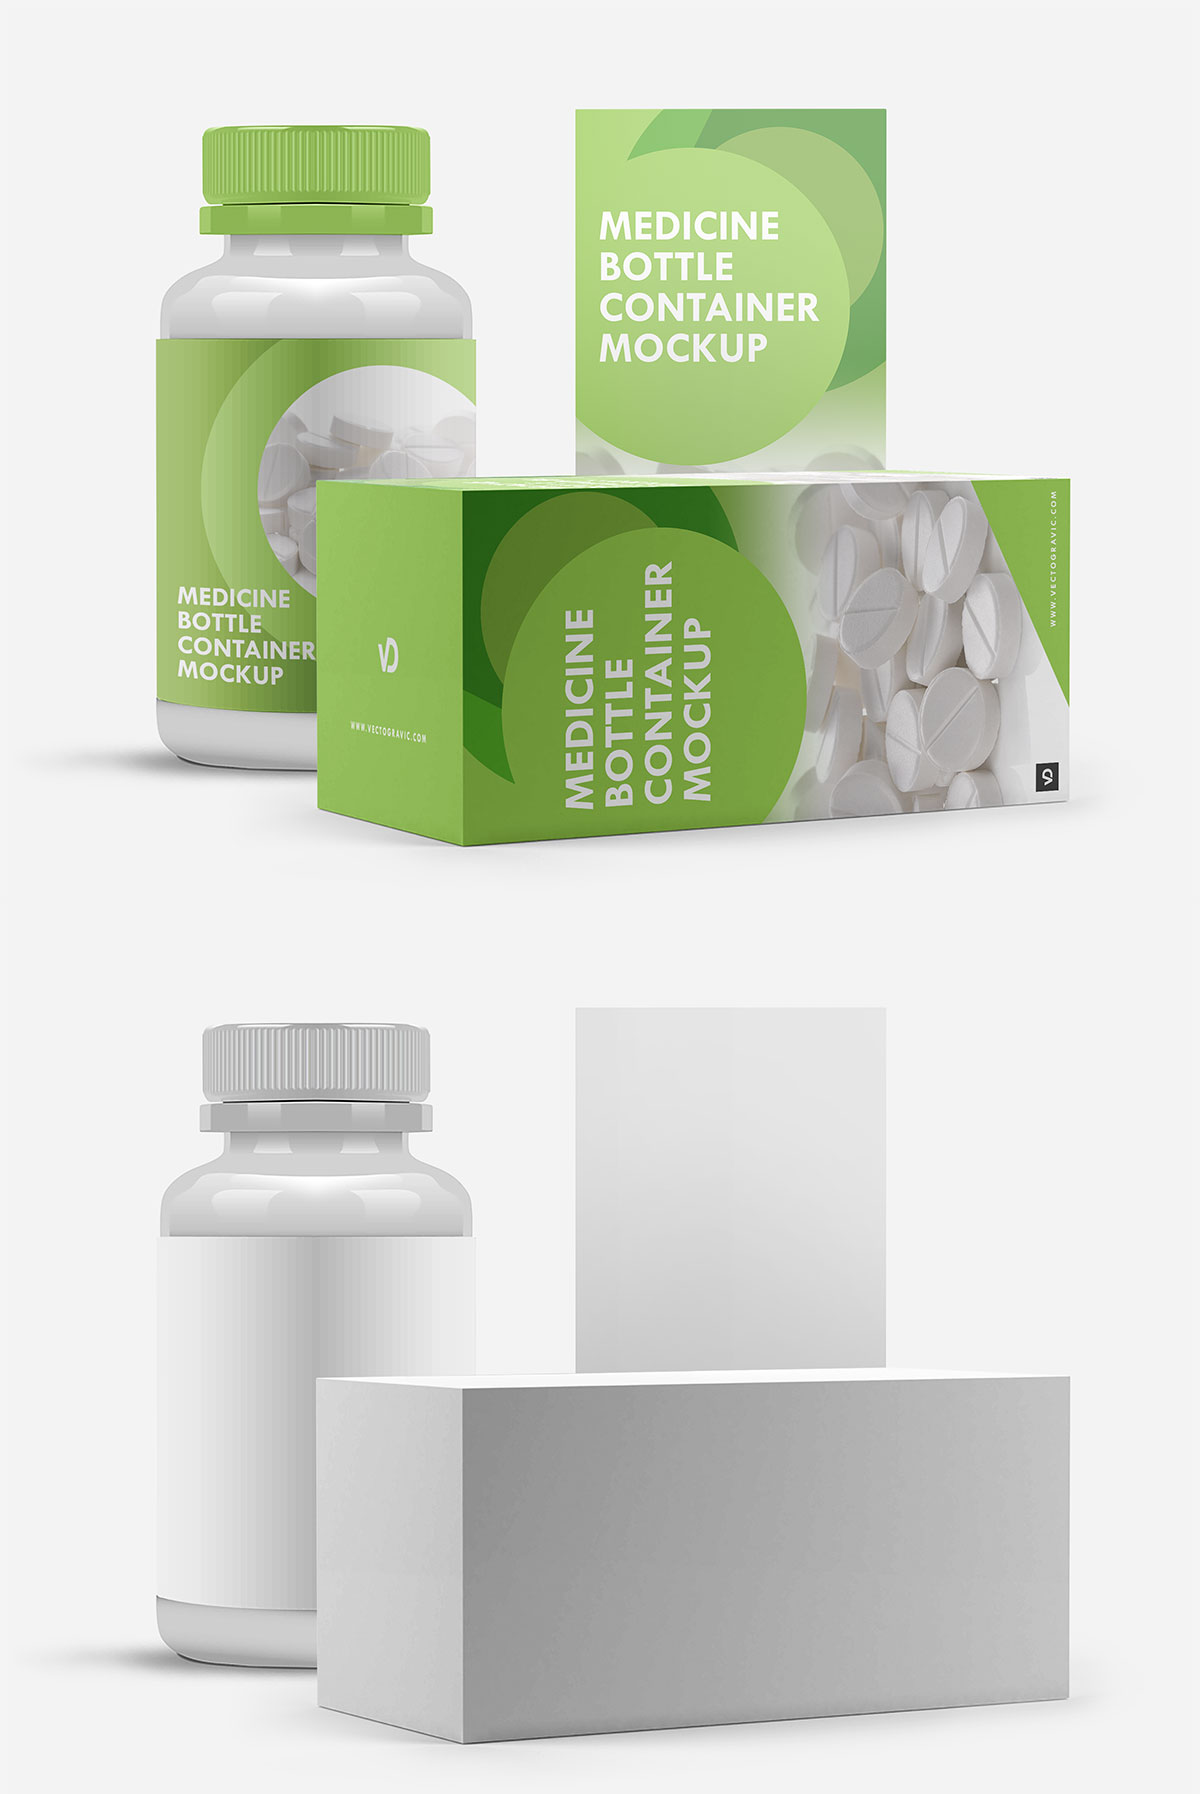 Free Medicine Bottle Container Mockup